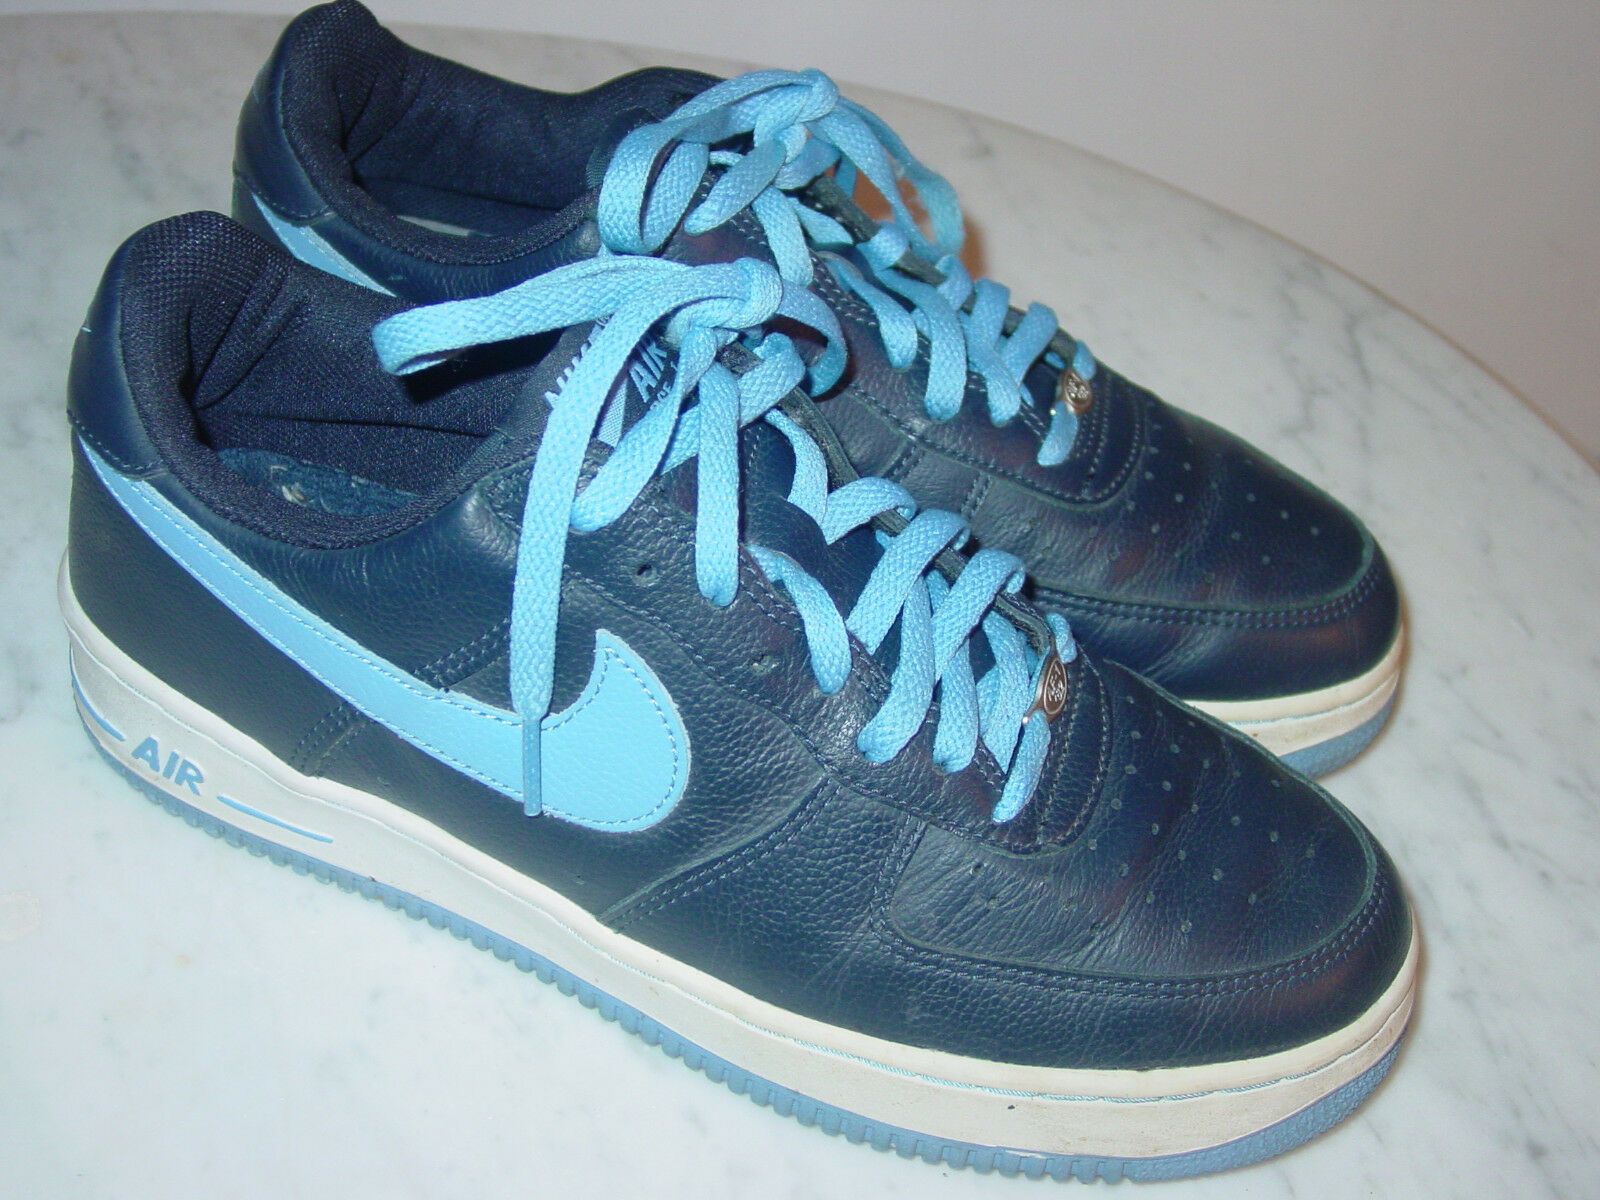 2002 Nike Air Force One 07 Obsidian Columbia bluee Leather Low shoes  Size 10